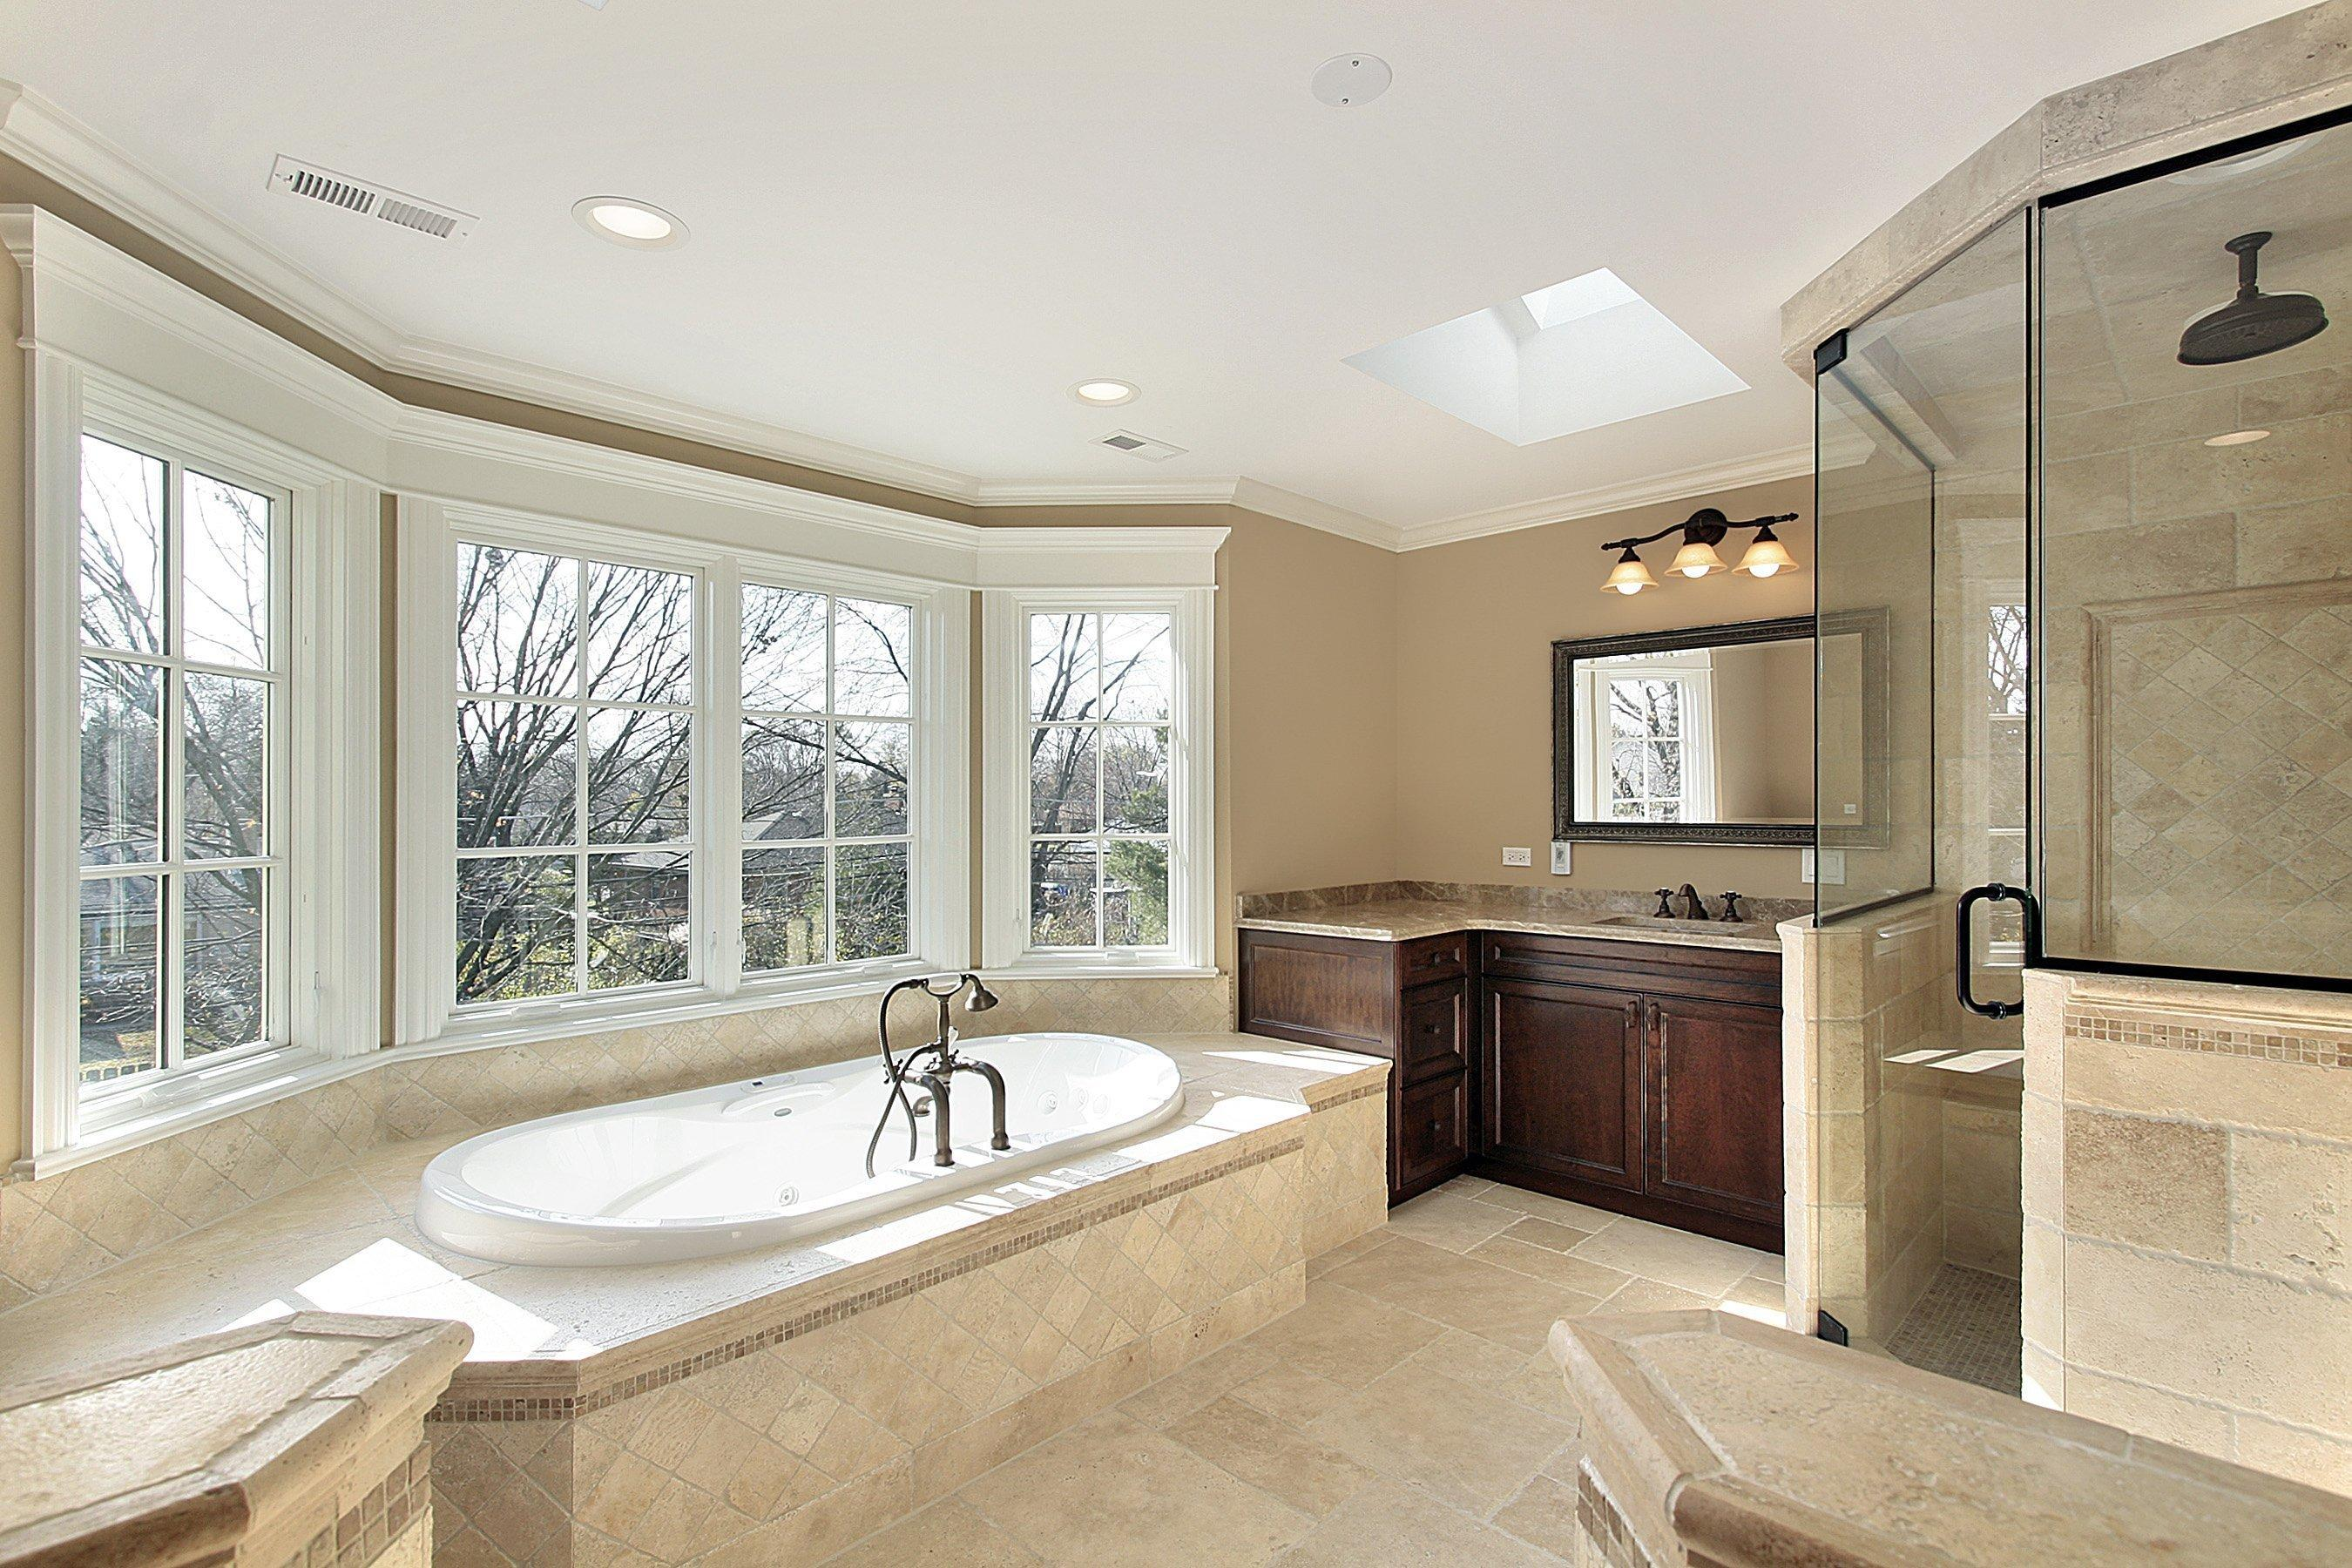 Bathroom Pictures Gallery living room list of things raleigh kitchen cabinetsraleigh